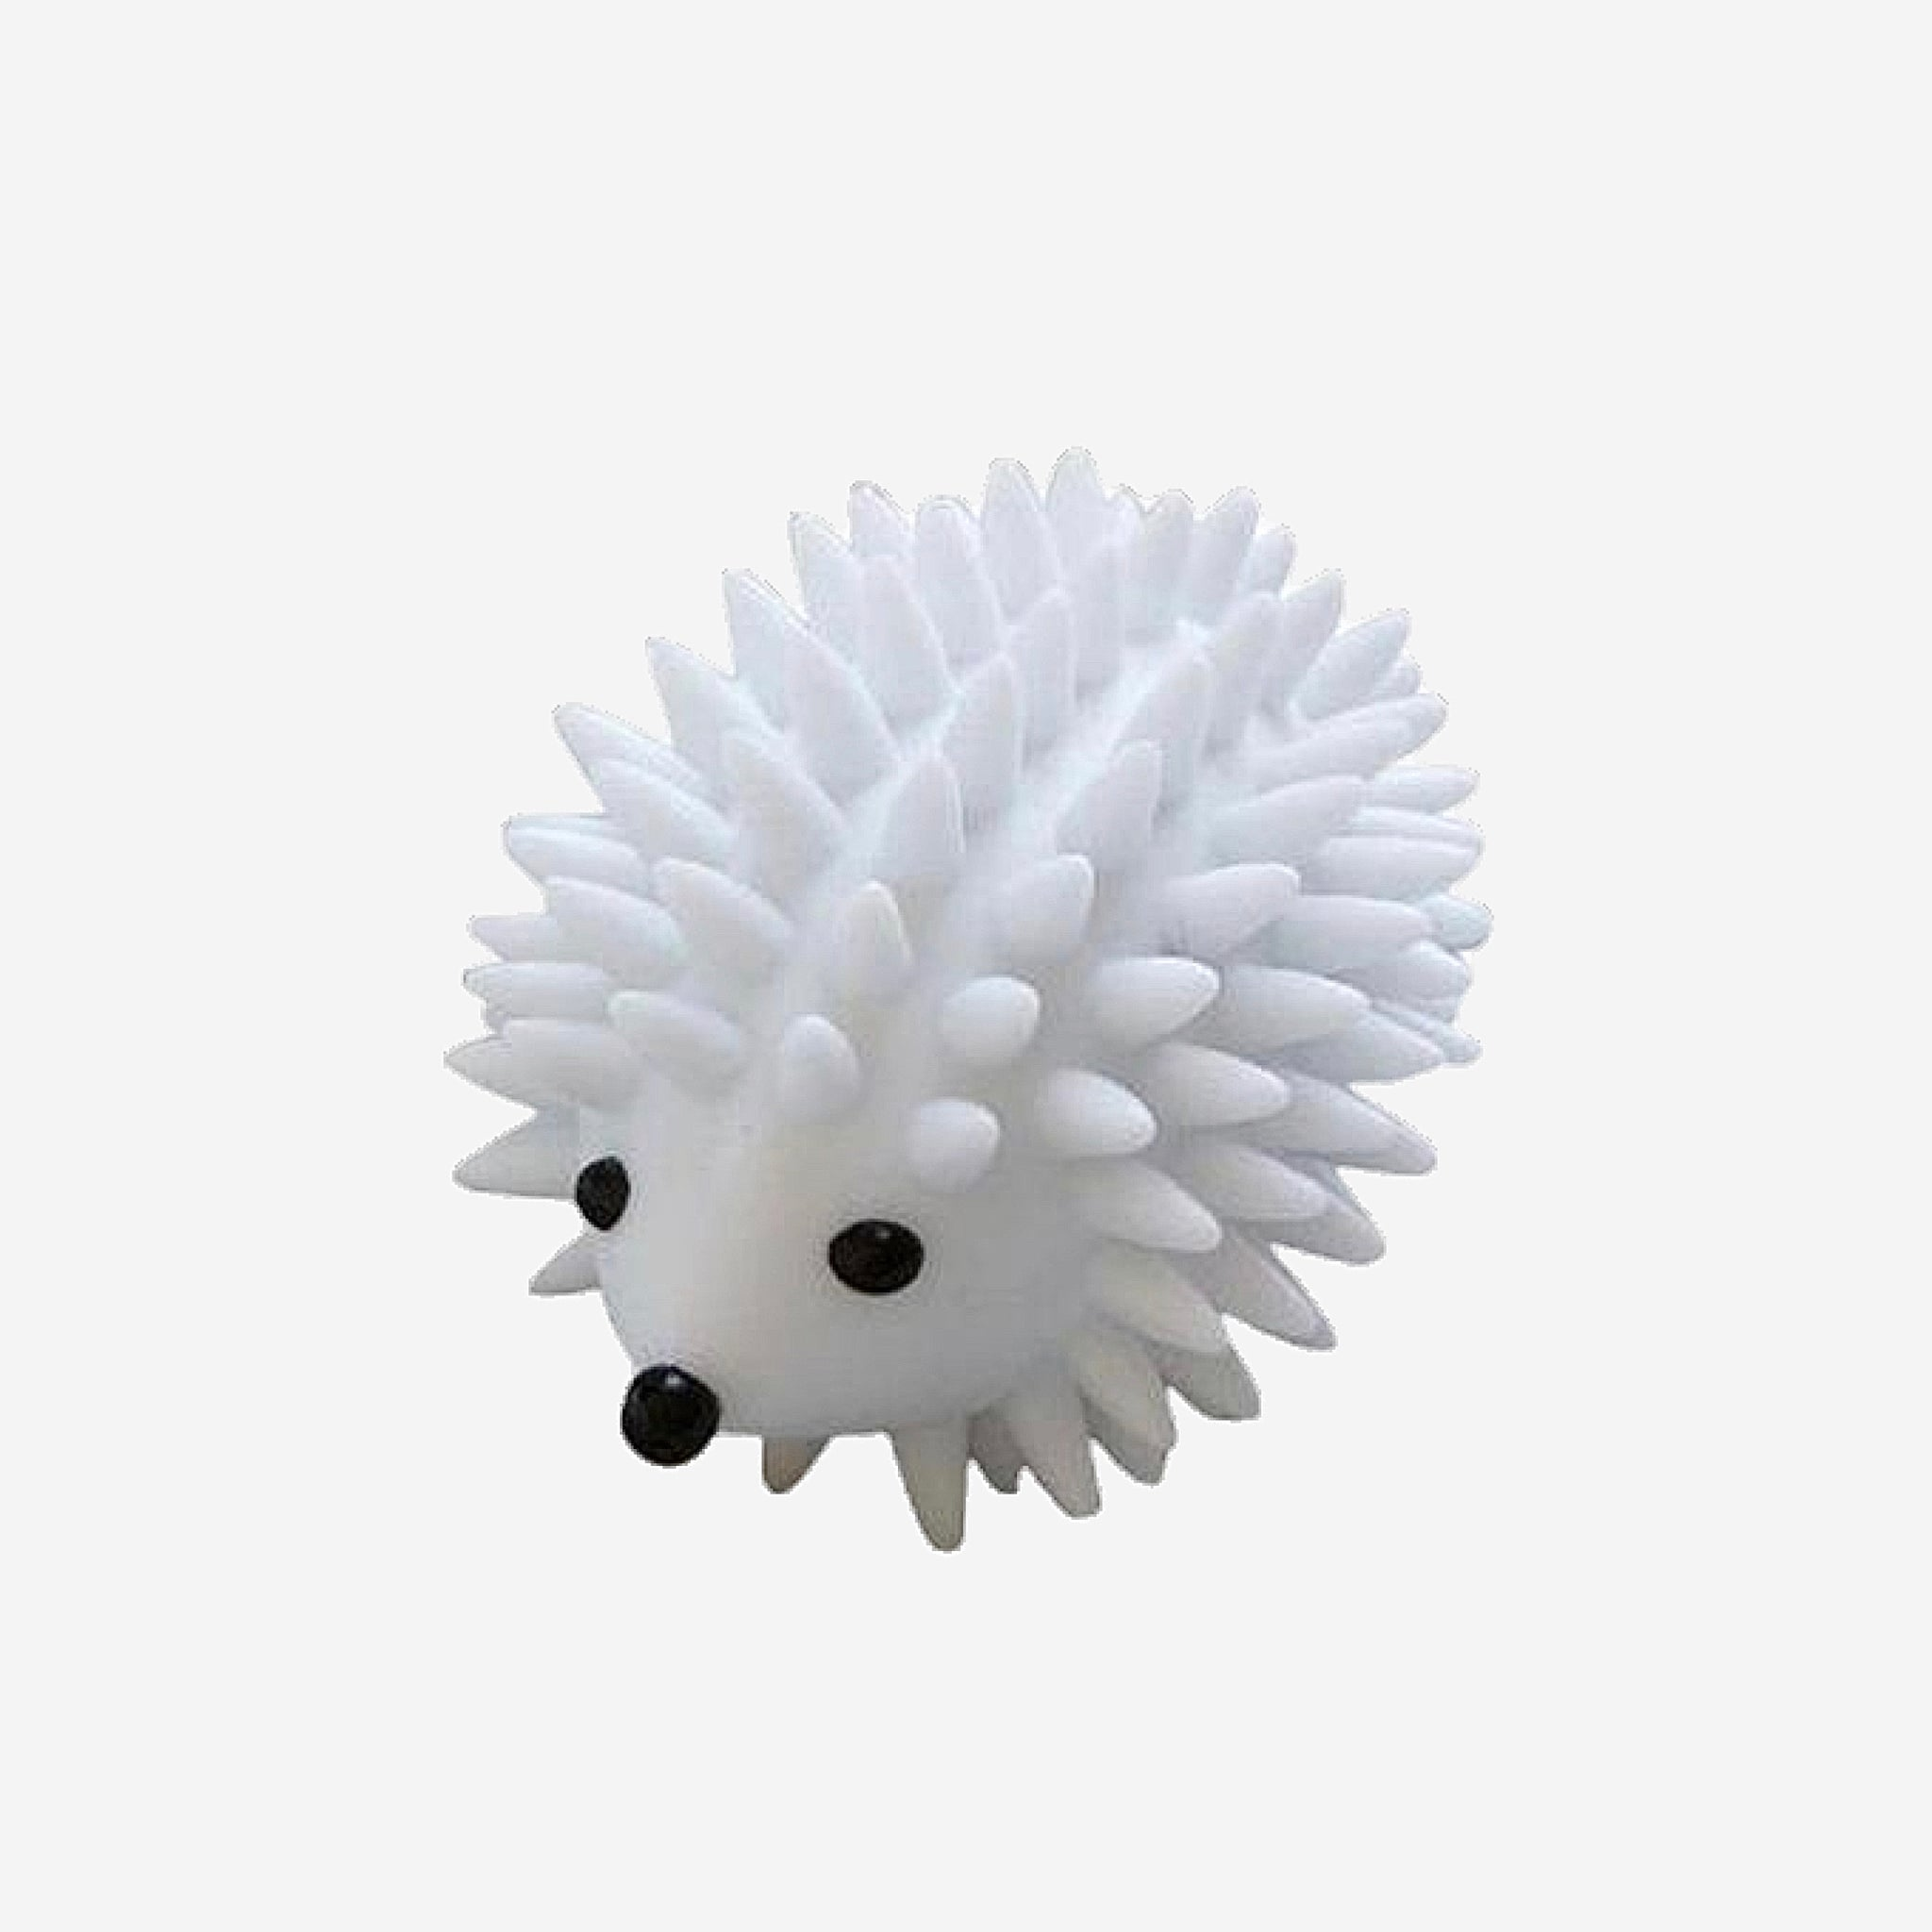 Hedgehog shape Laundry Ball Reusable Clean Washing Dryer clothes wash Drying Balls Accessories Tools Trendy